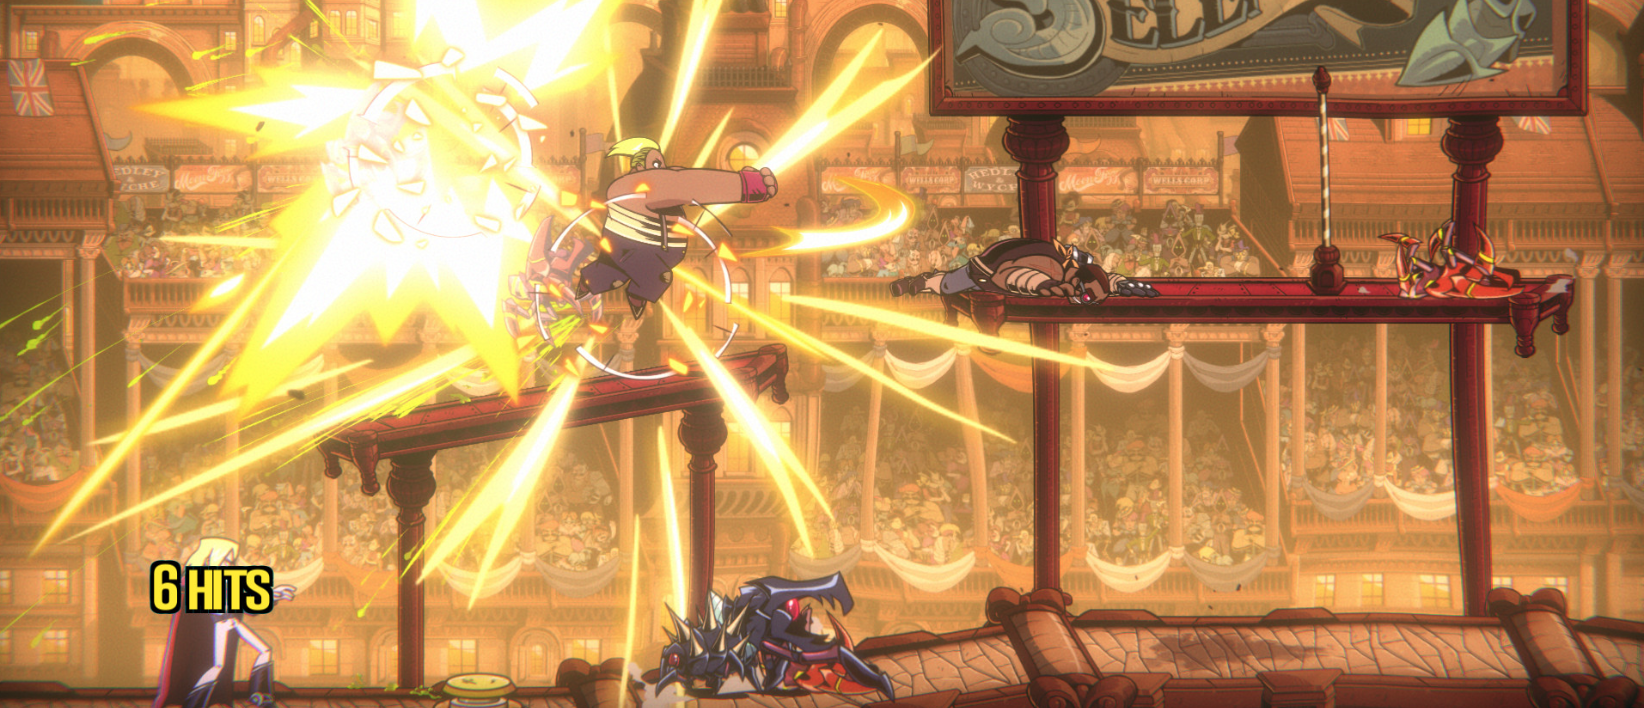 High-speed brawler Speed Brawl hits out this summer